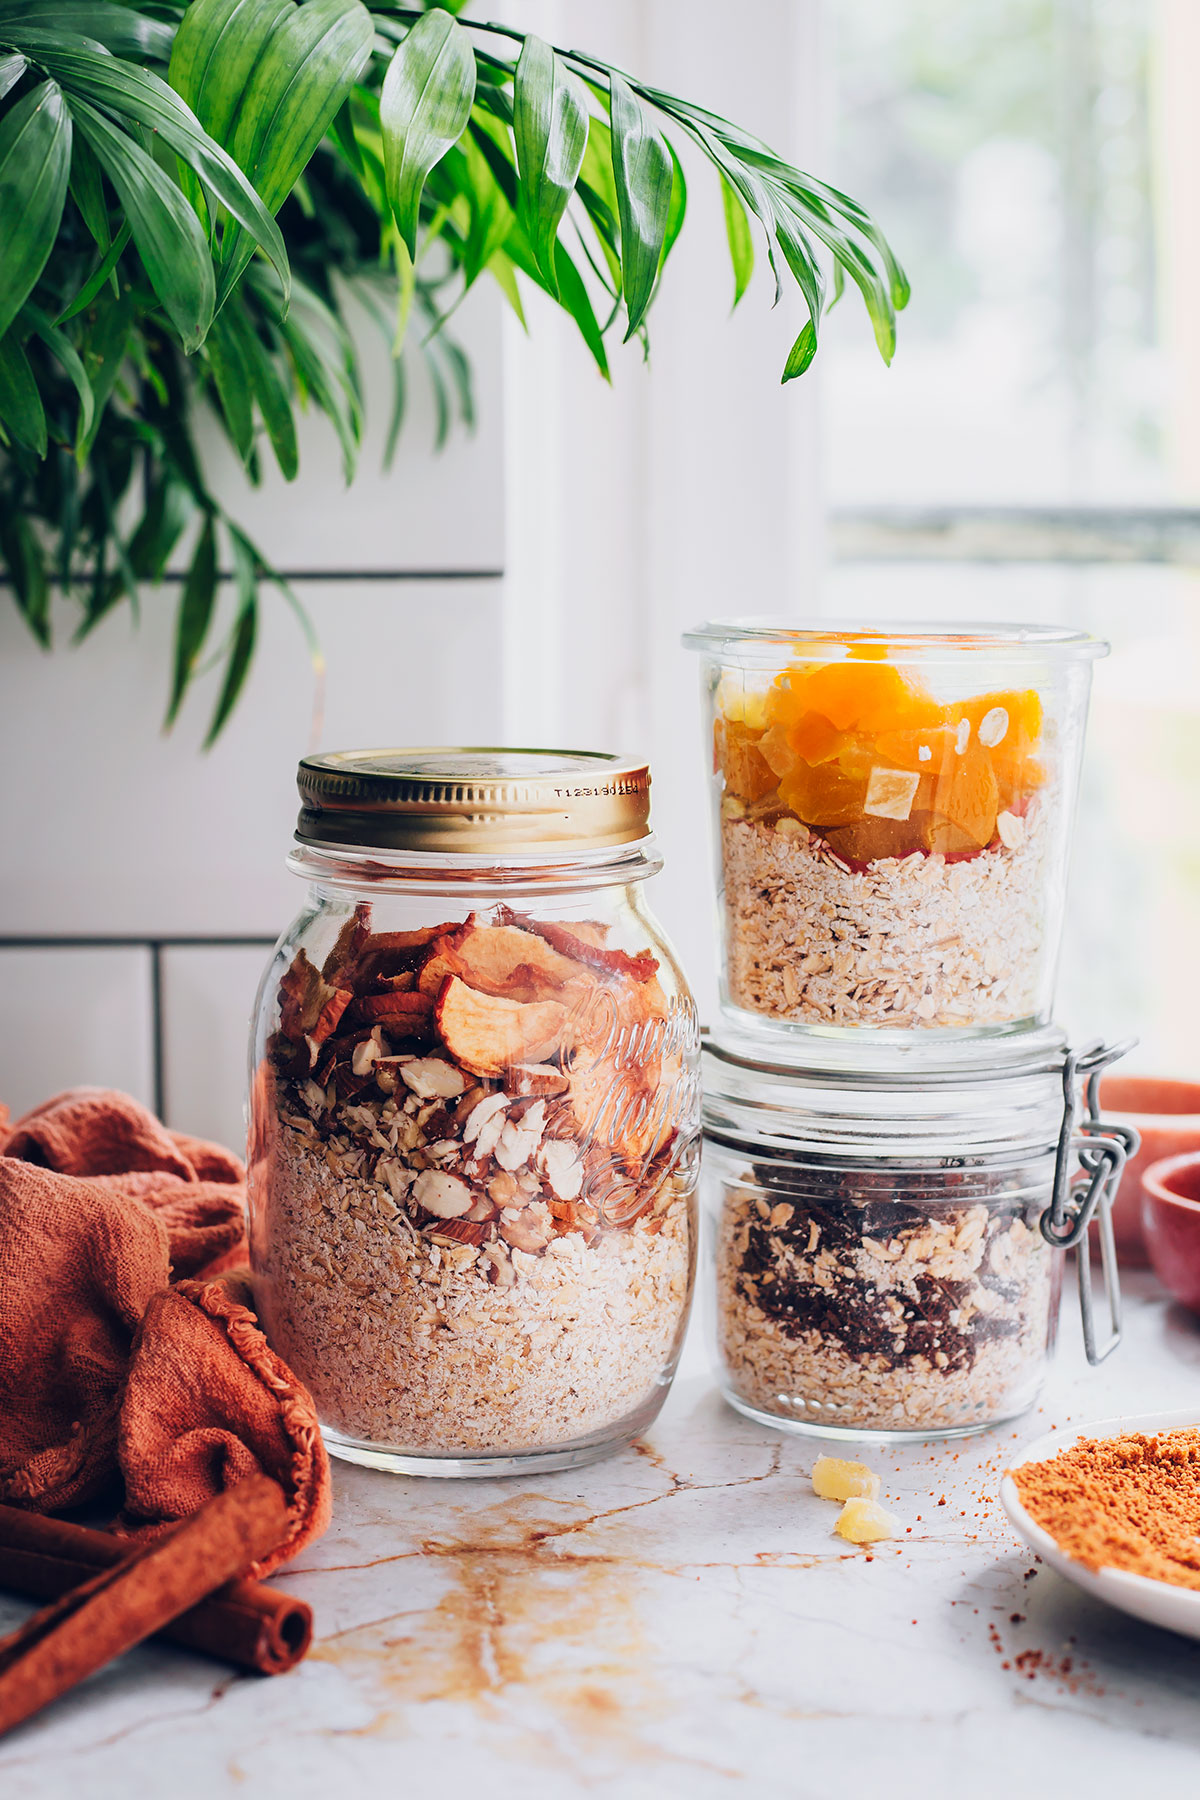 How to make your own instant oatmeal